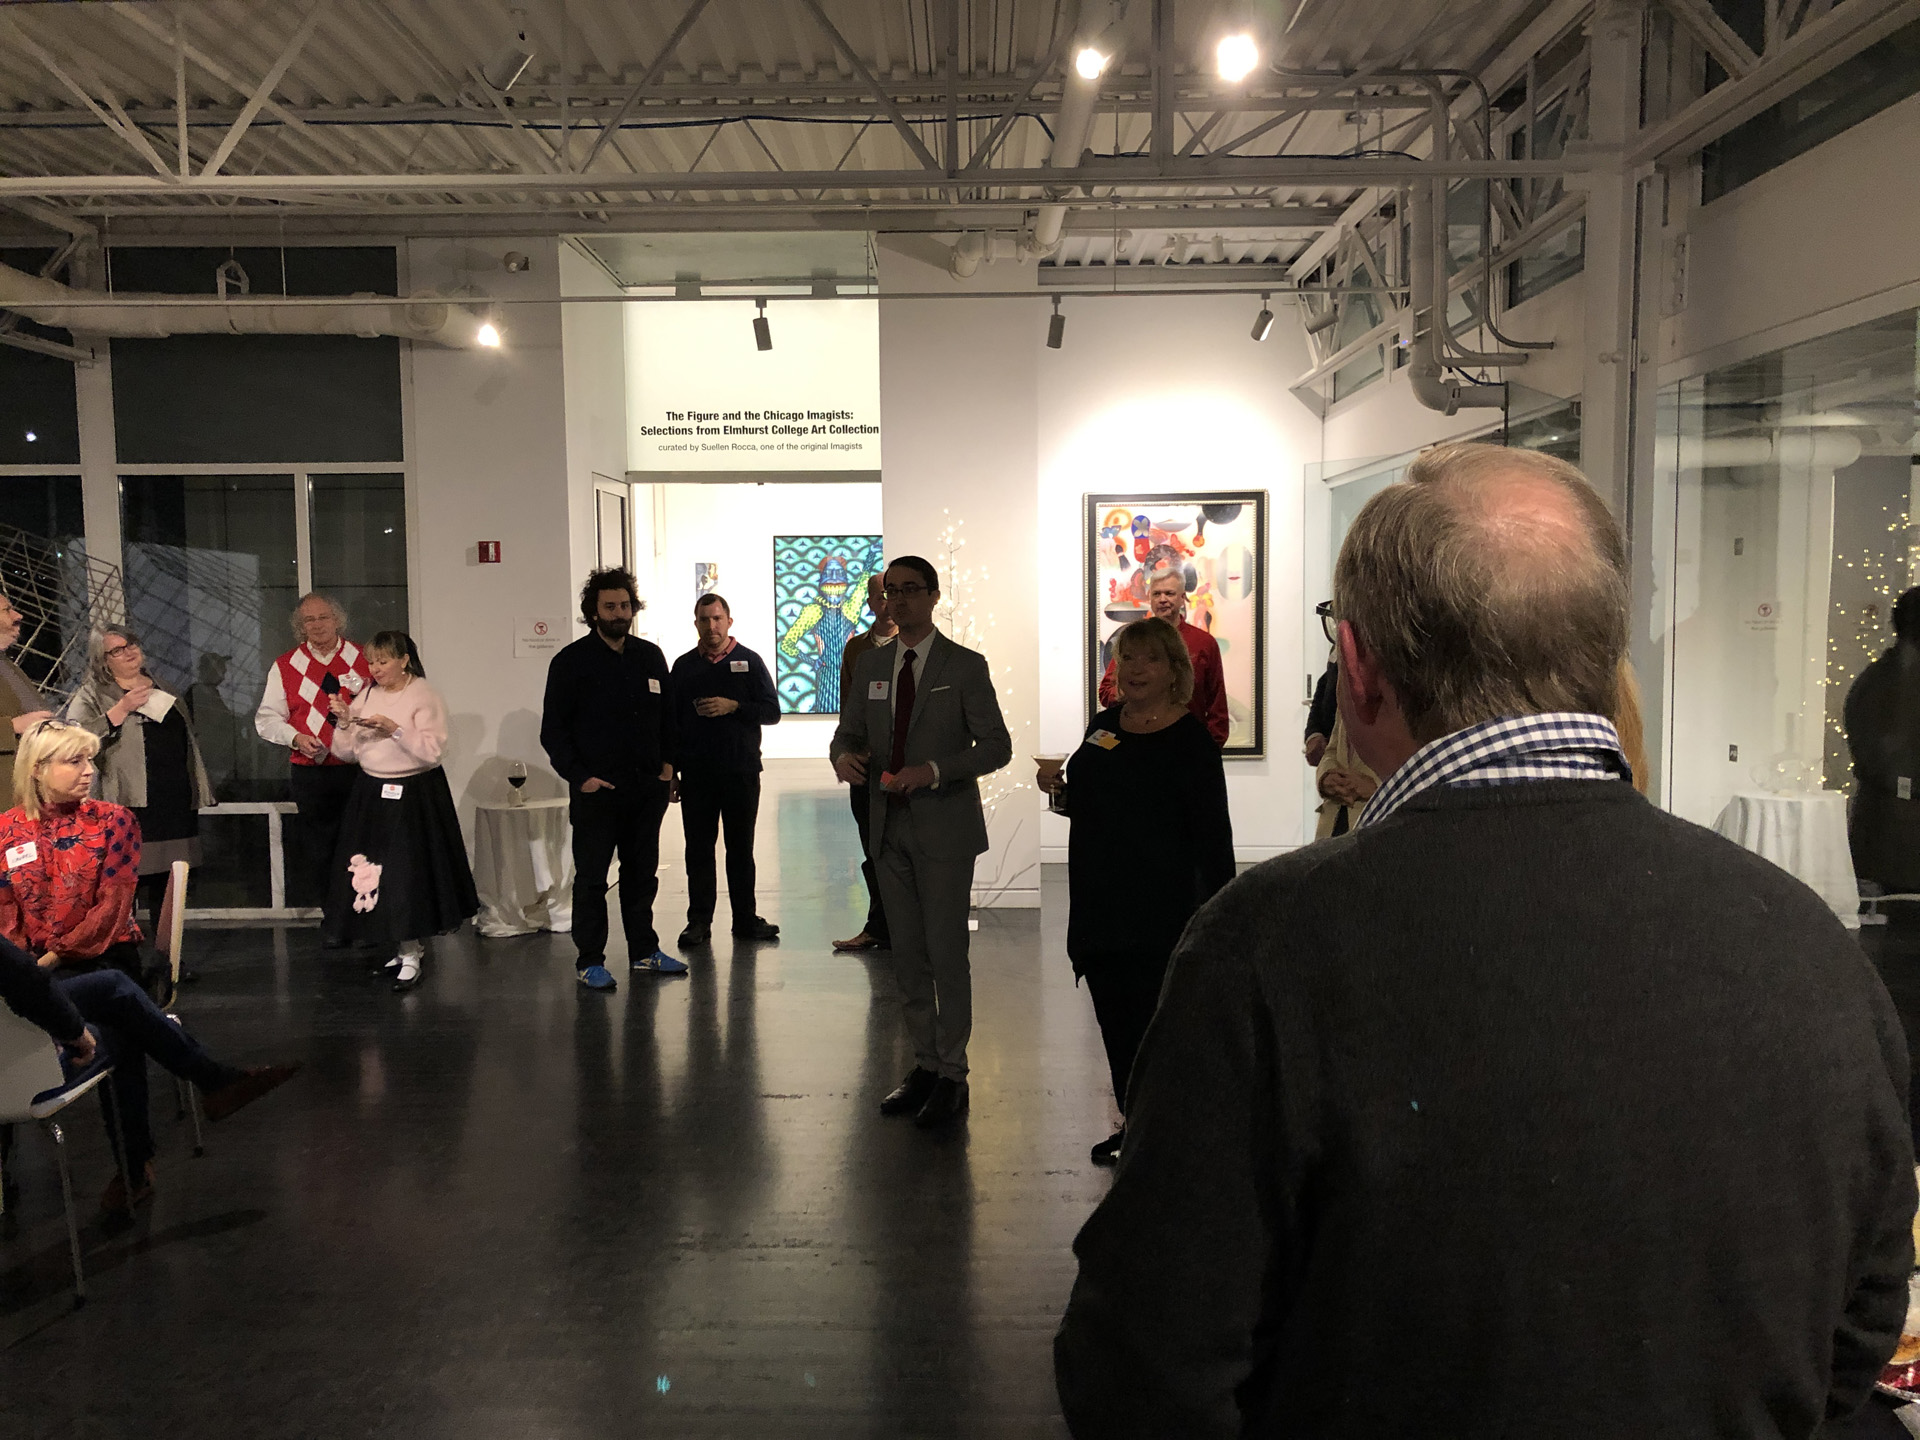 CBB's 2018 holiday party at the Elmhurst Art Museum